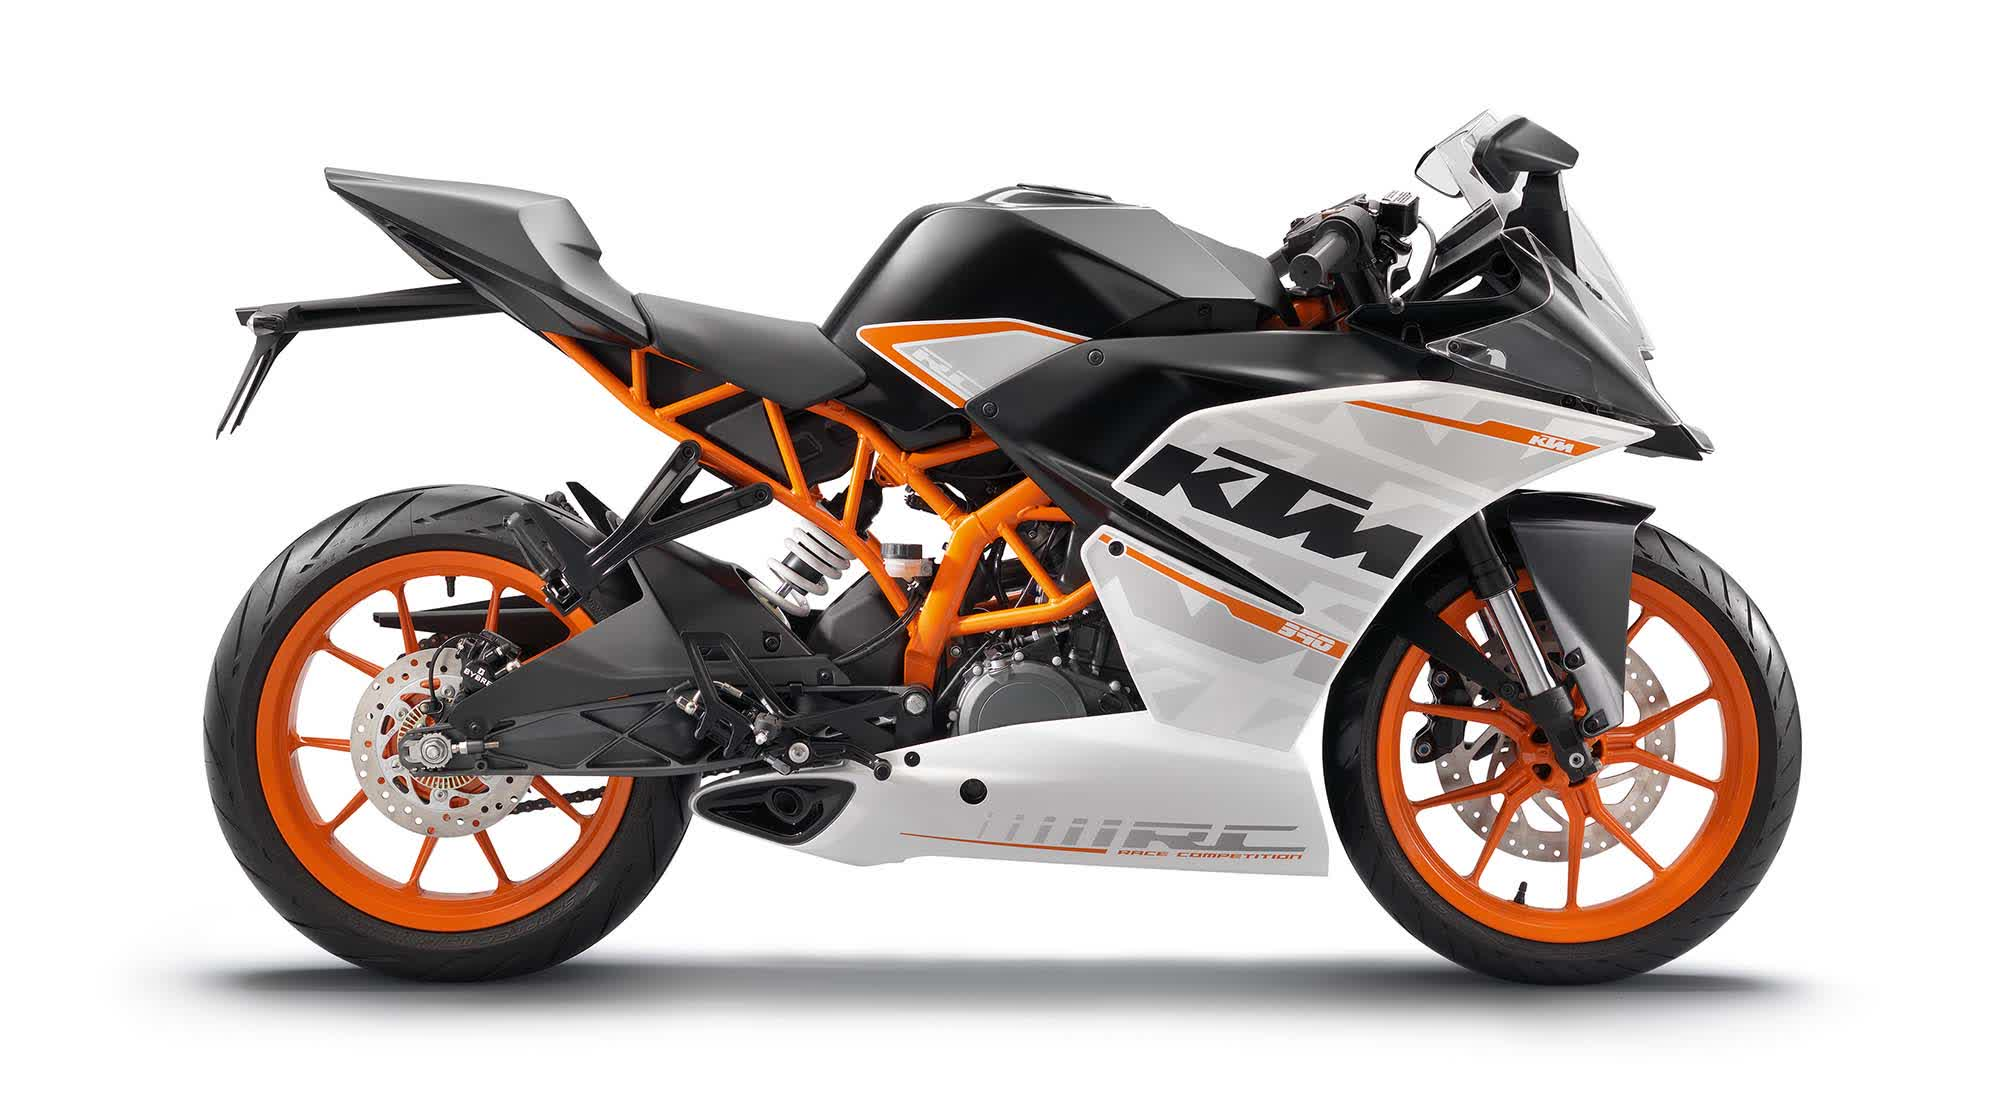 ktm siap rilis rc 390 pada september 2014. Black Bedroom Furniture Sets. Home Design Ideas